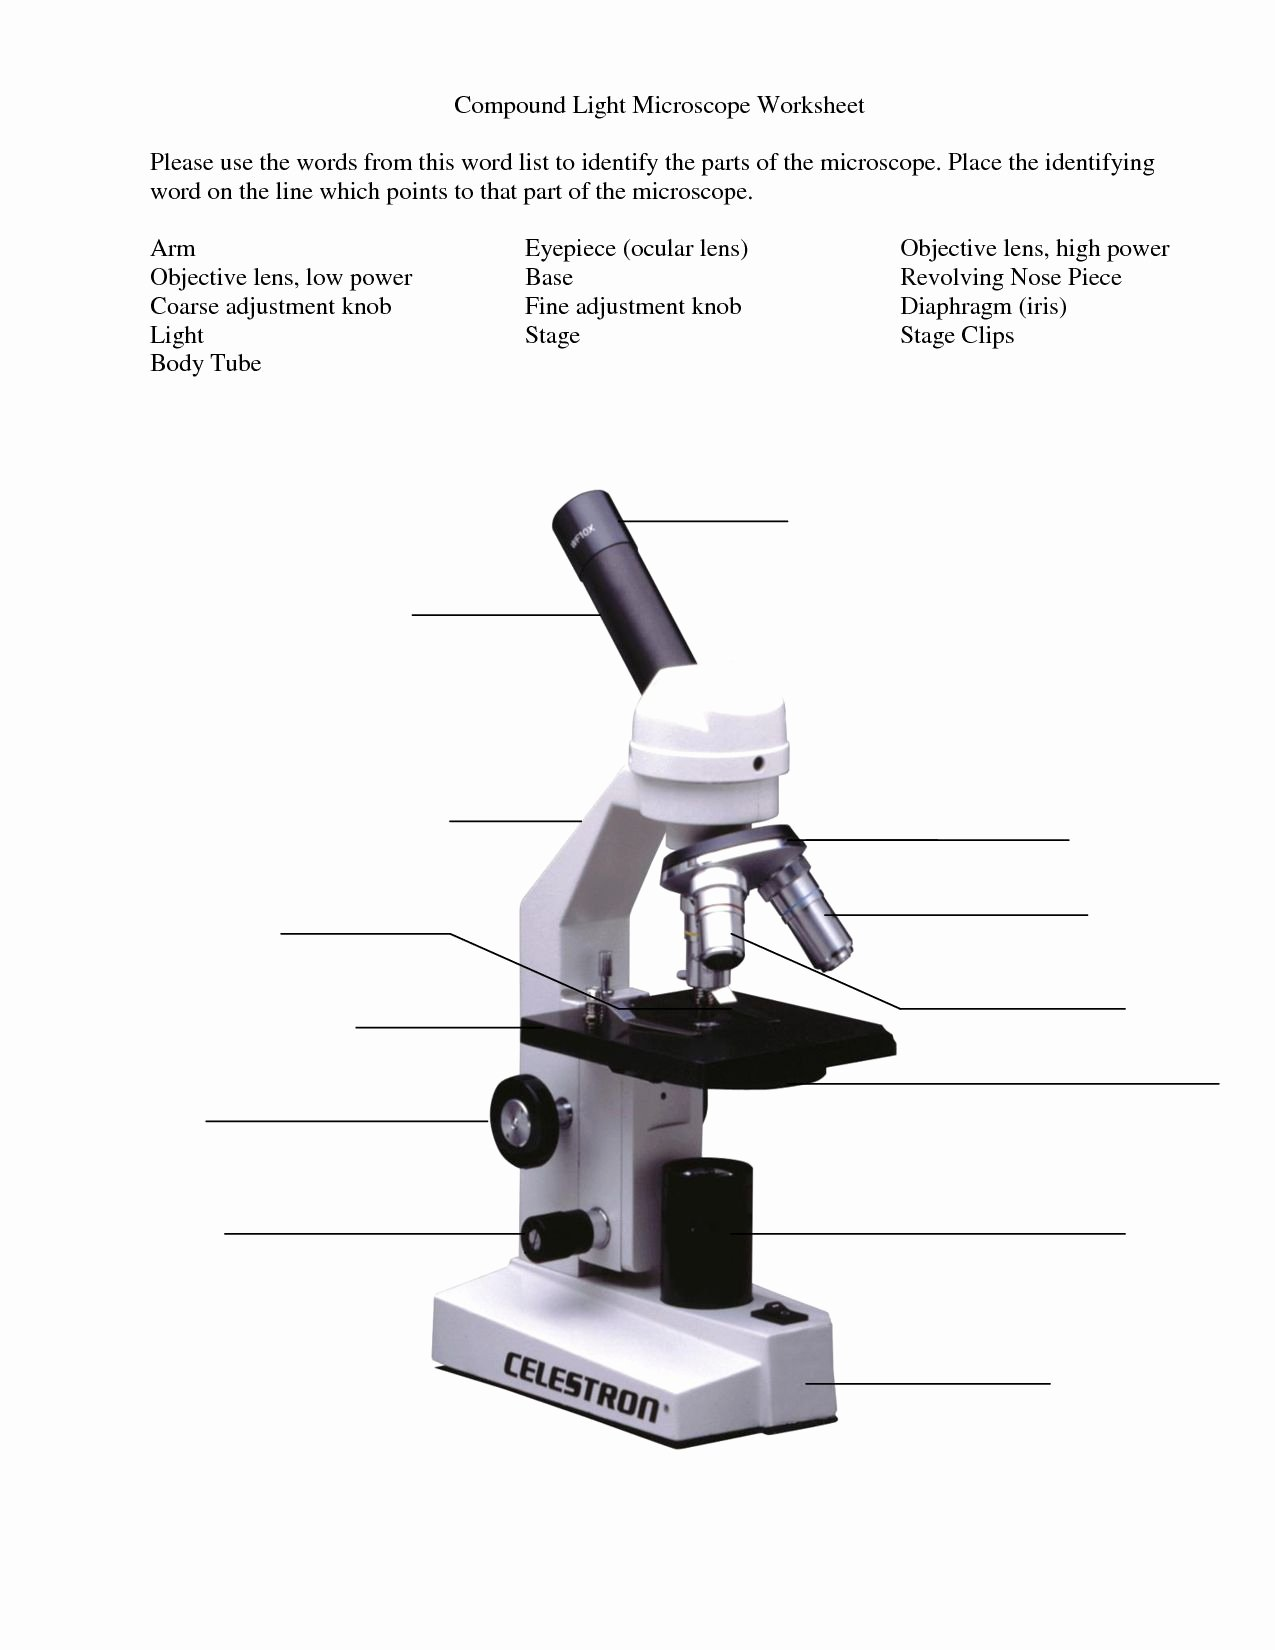 Microscope Parts and Use Worksheet Unique Microscope Parts and Use Worksheet Answer Key